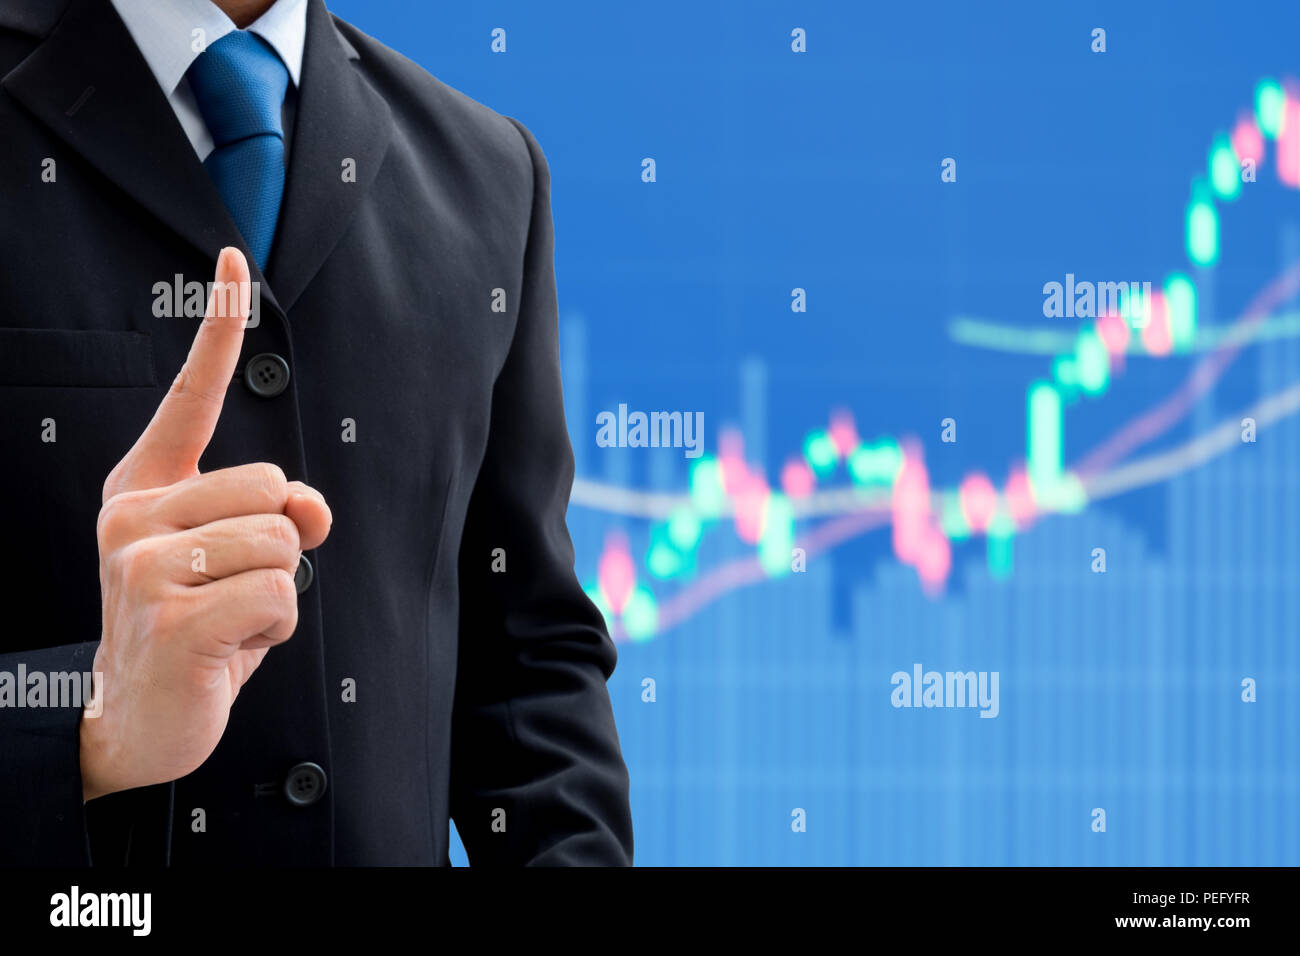 Businessman in dark gray suit raising his pointing finger showing that he is getting an idea and strategy to success in business. Business and stock m - Stock Image